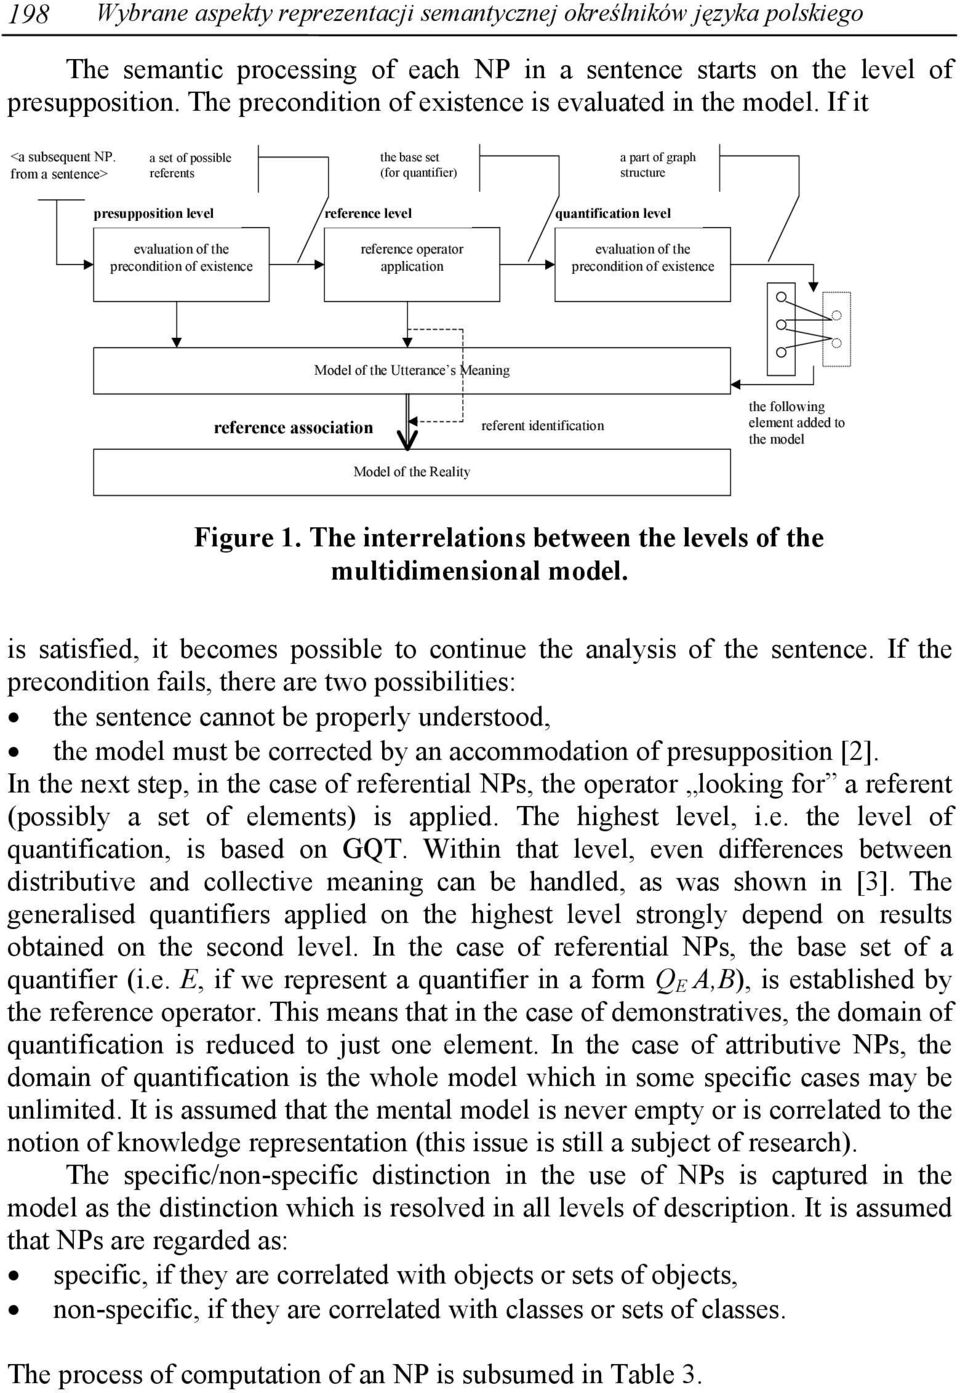 from a sentence> a set of possible referents the base set (for quantifier) a part of graph structure presupposition level evaluation of the precondition of existence reference level reference